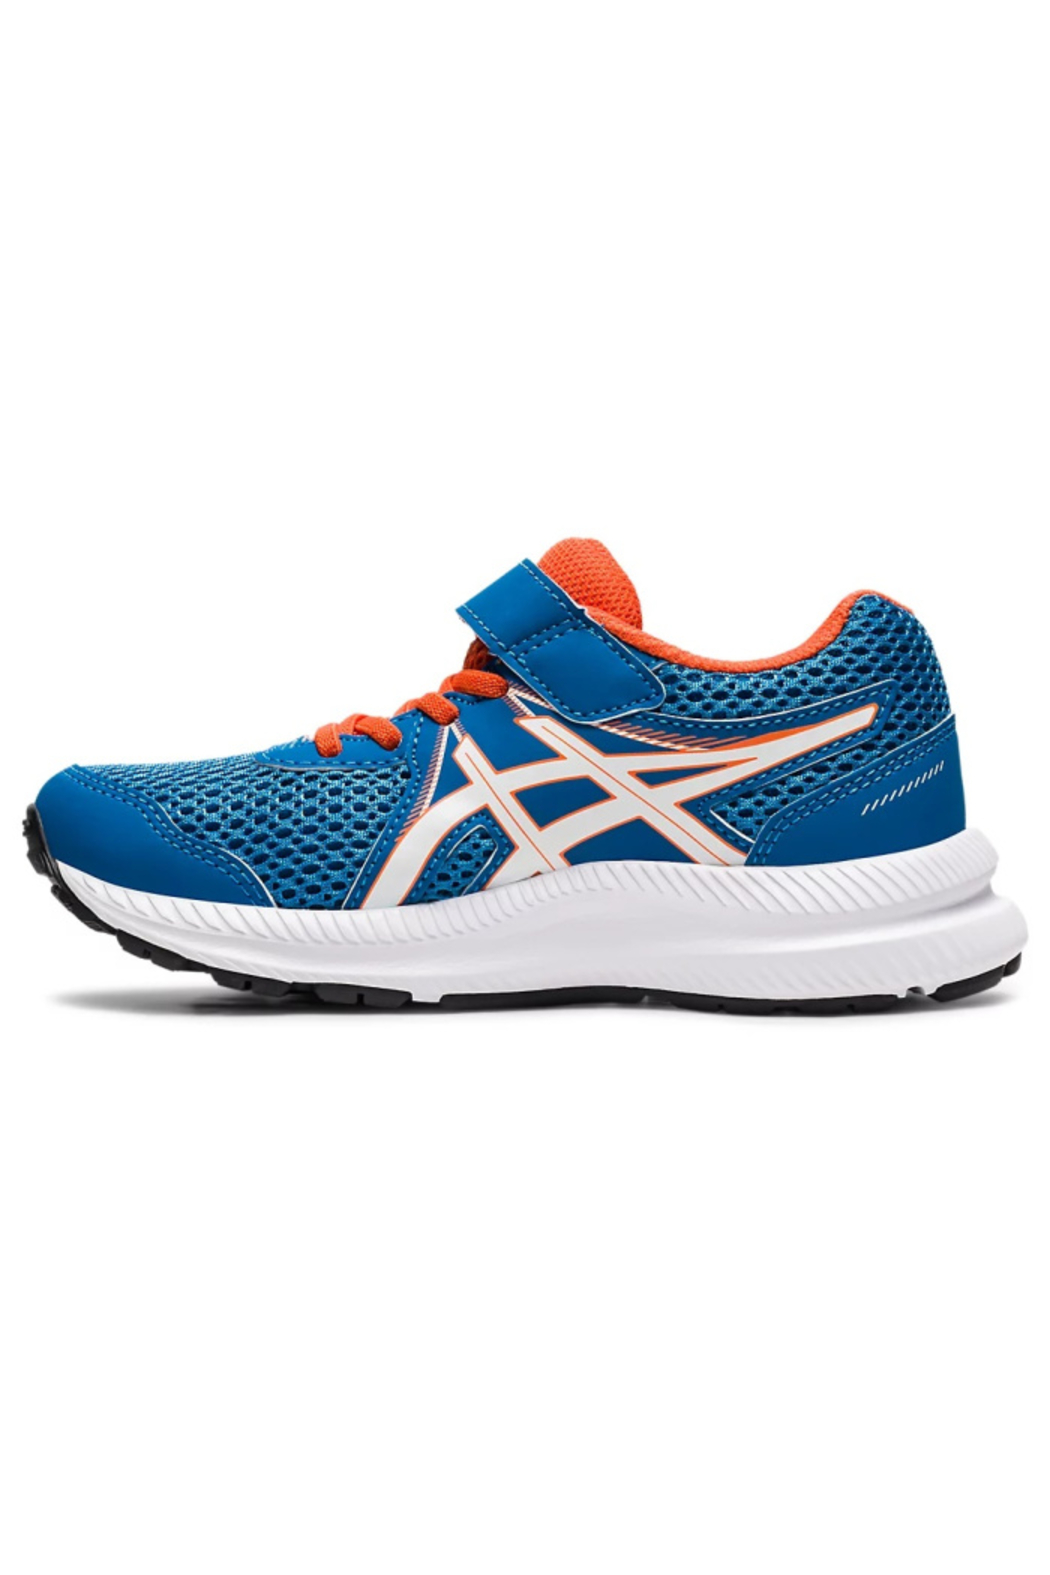 Asics Kids Contend 7 PS - Front Full Image